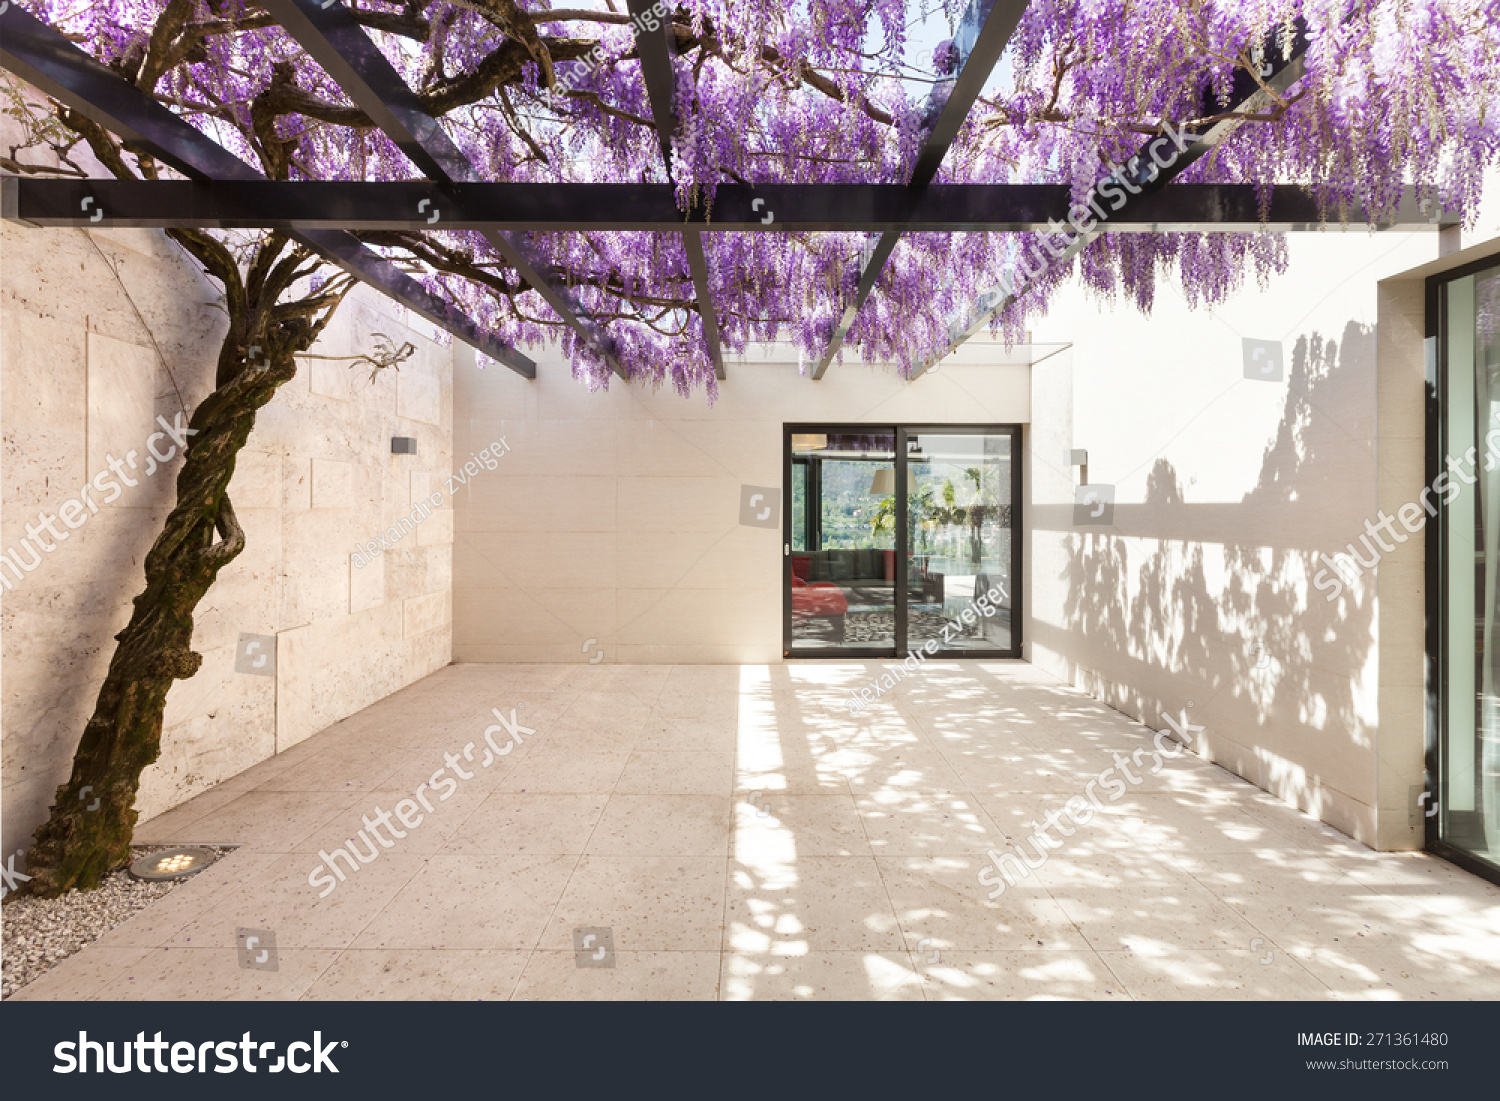 Architecture Modern House Beautiful Veranda Wisteria Stock Photo